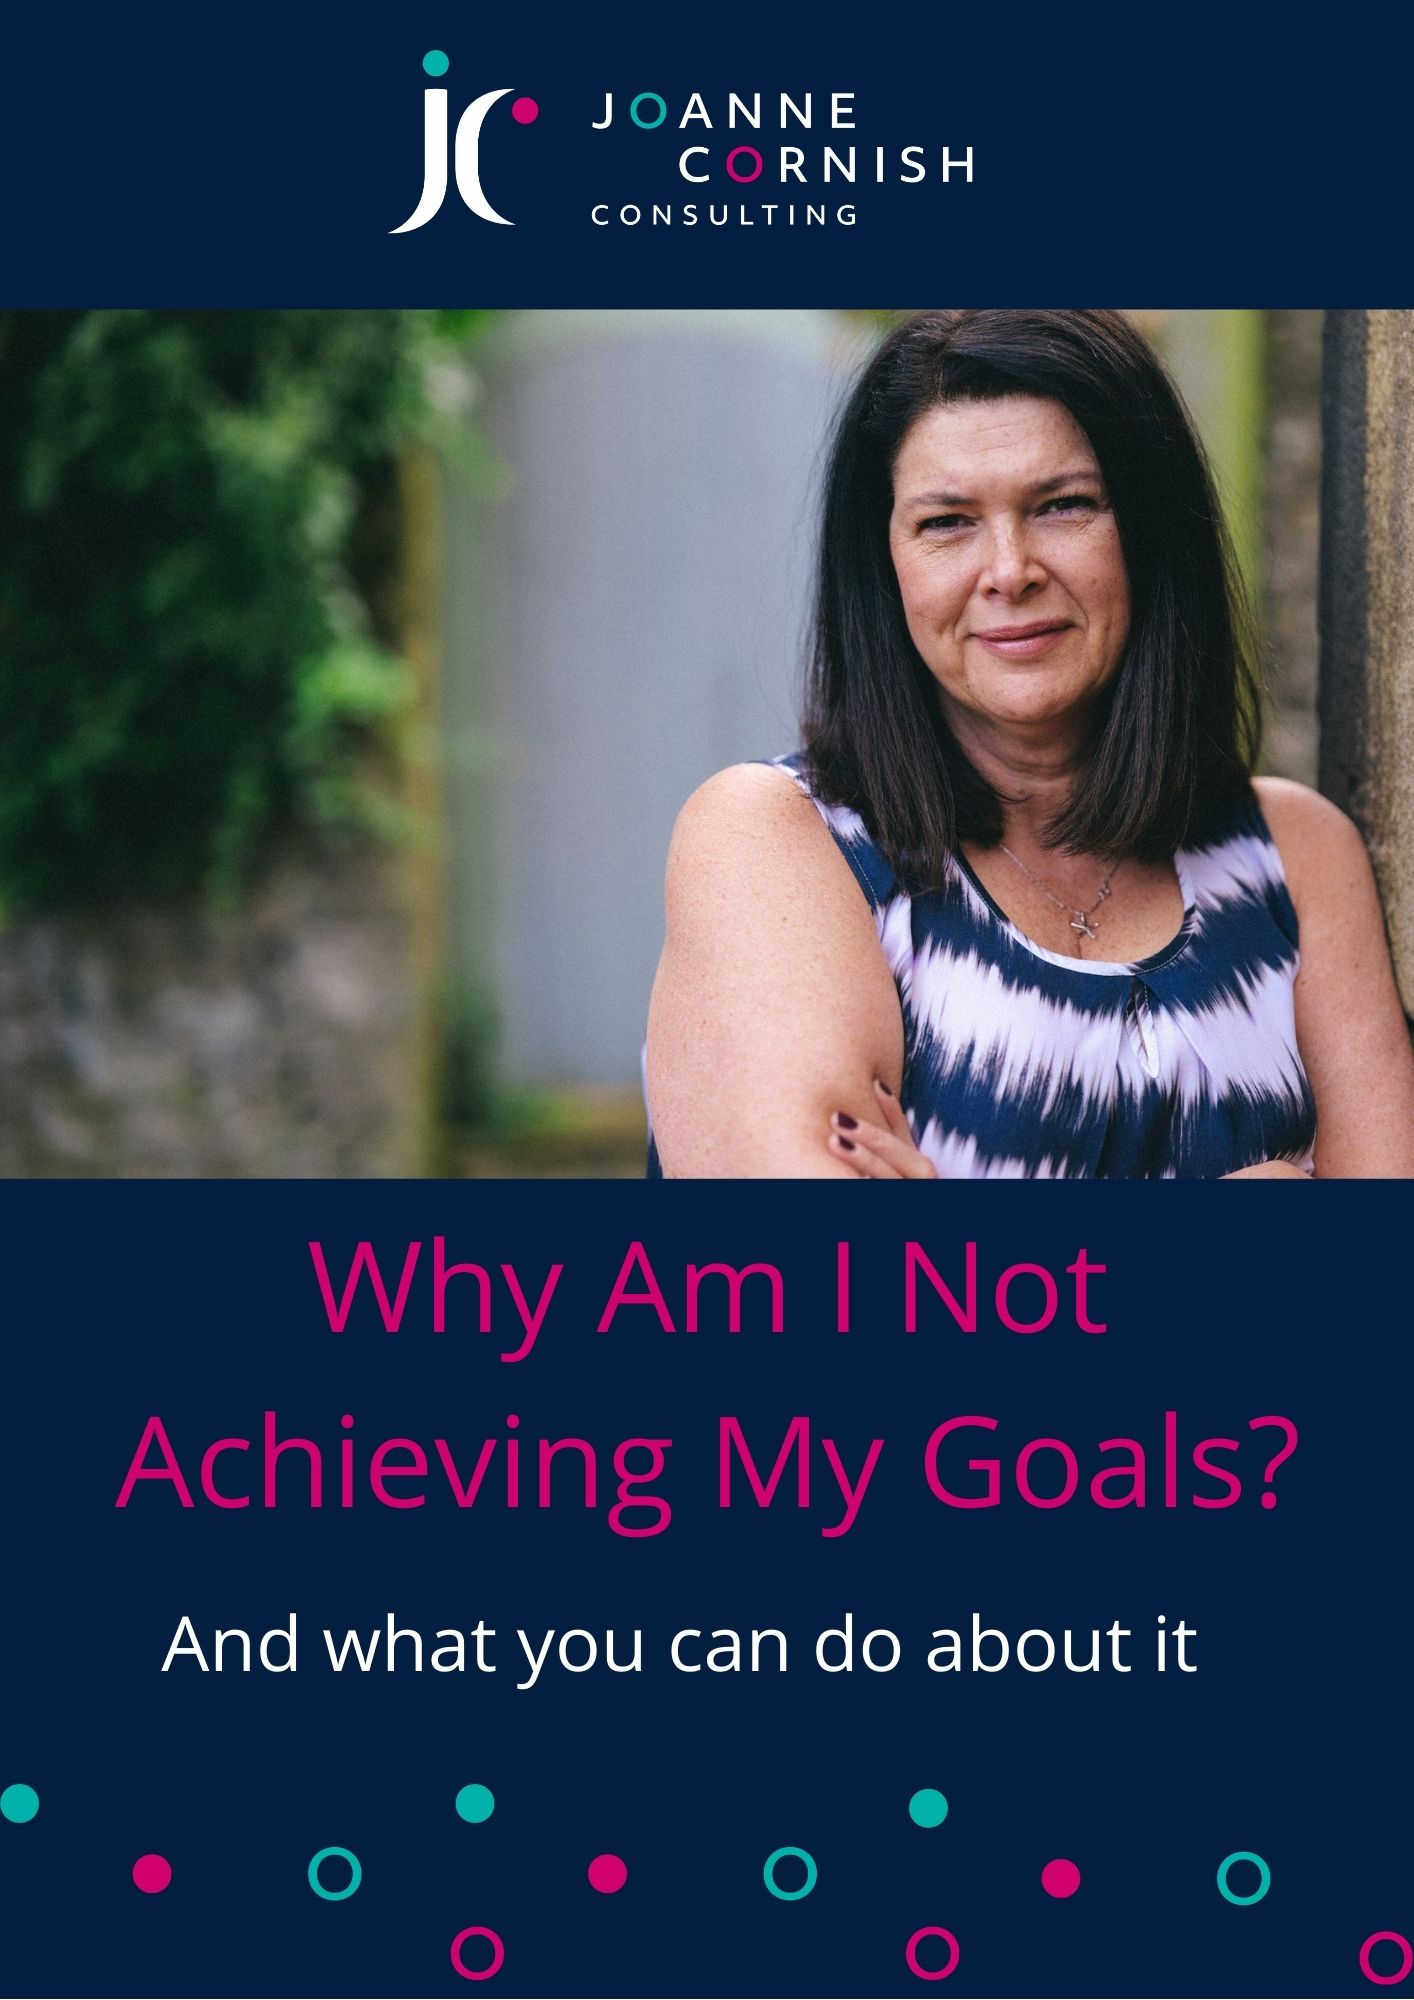 Title graphic for blog post by Joanne Cornish entitled Why Am I Not Achieving My Goals, with a photo of Joanne smiling at the camera.